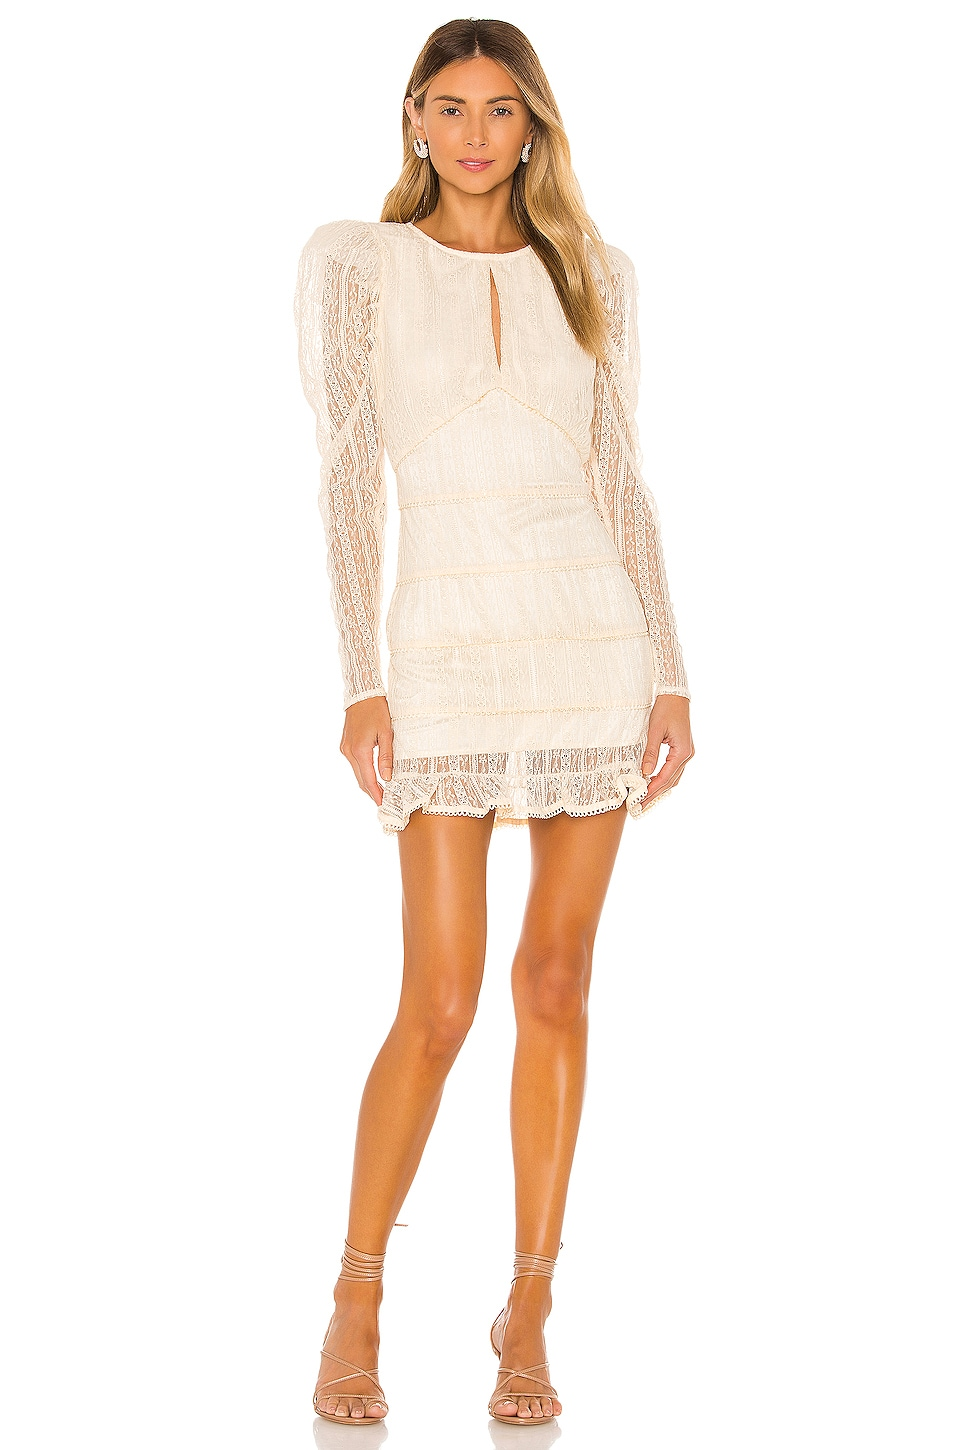 House of Harlow 1960 x REVOLVE Henrik Mini Dress in Ivory